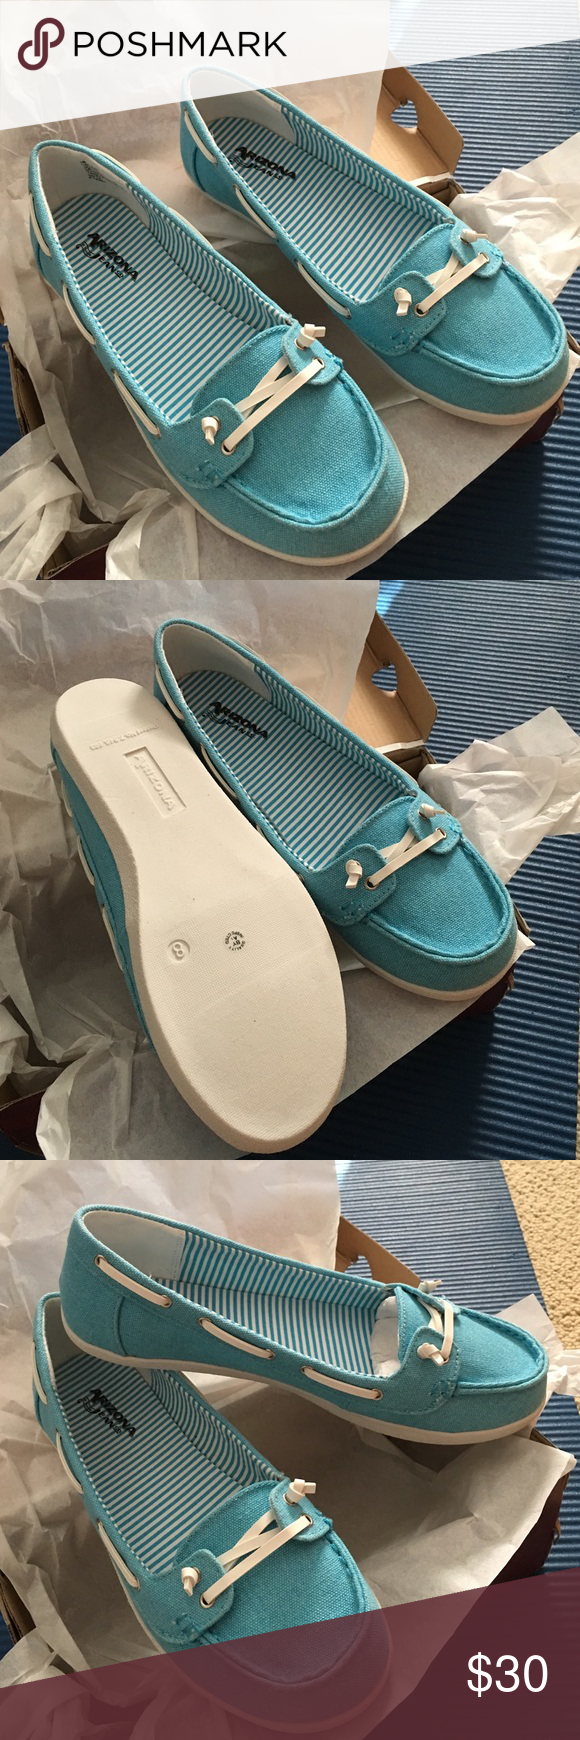 Nwt Arizona blue canvas loafers size 8 Nwt Arizona harbor blue canvas loafers retails for $60.00.New in the box.Any questions please ask Arizona Jean Company Shoes Flats & Loafers